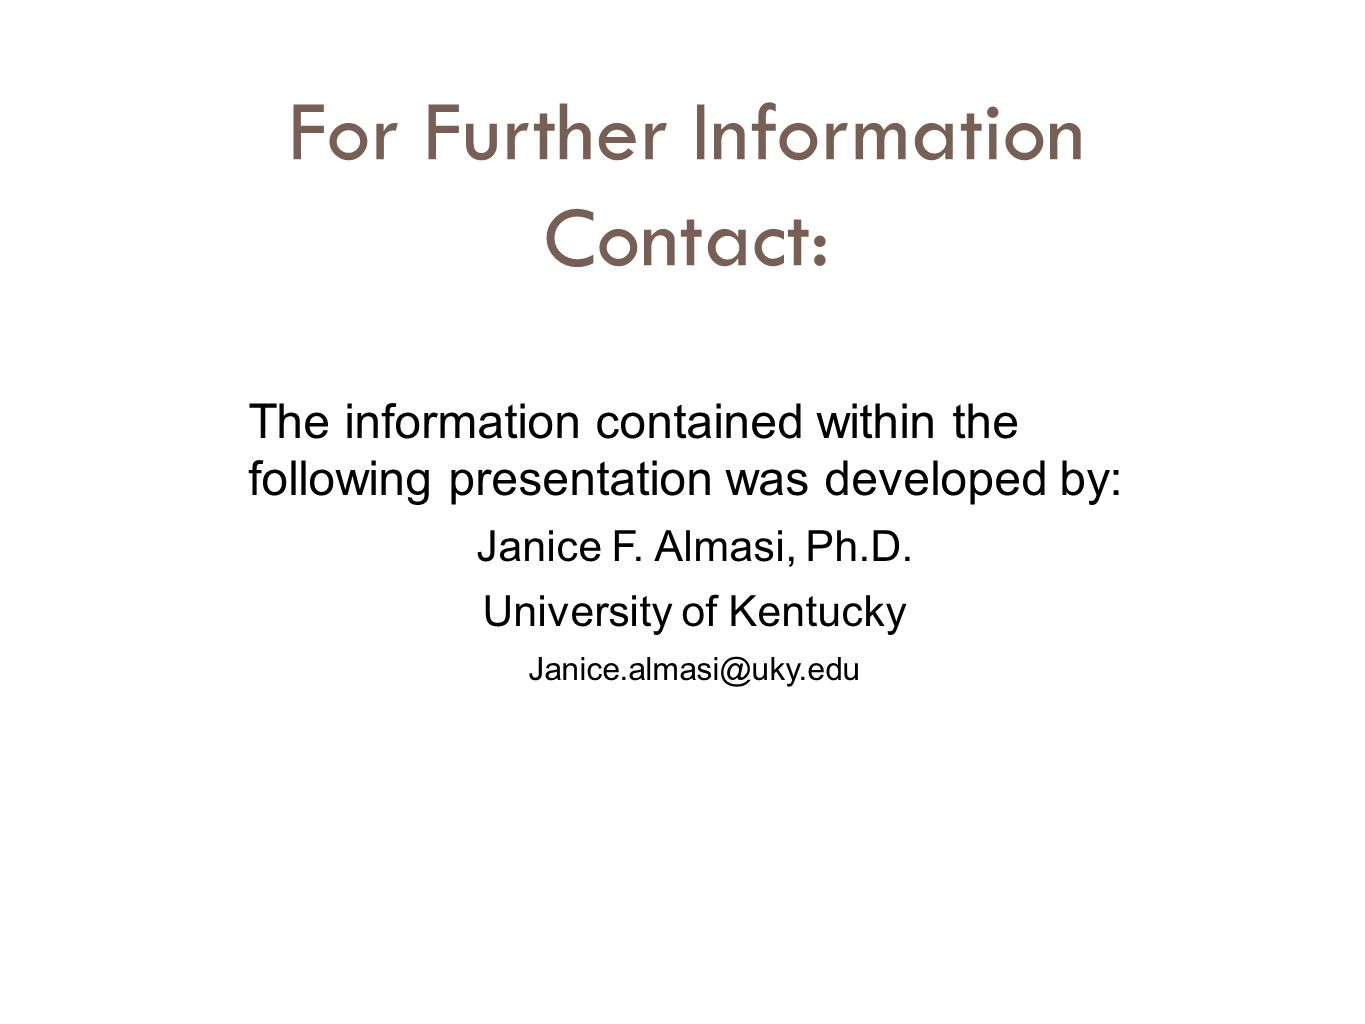 For Further Information Contact: The information contained within the following presentation was developed by: Janice F.